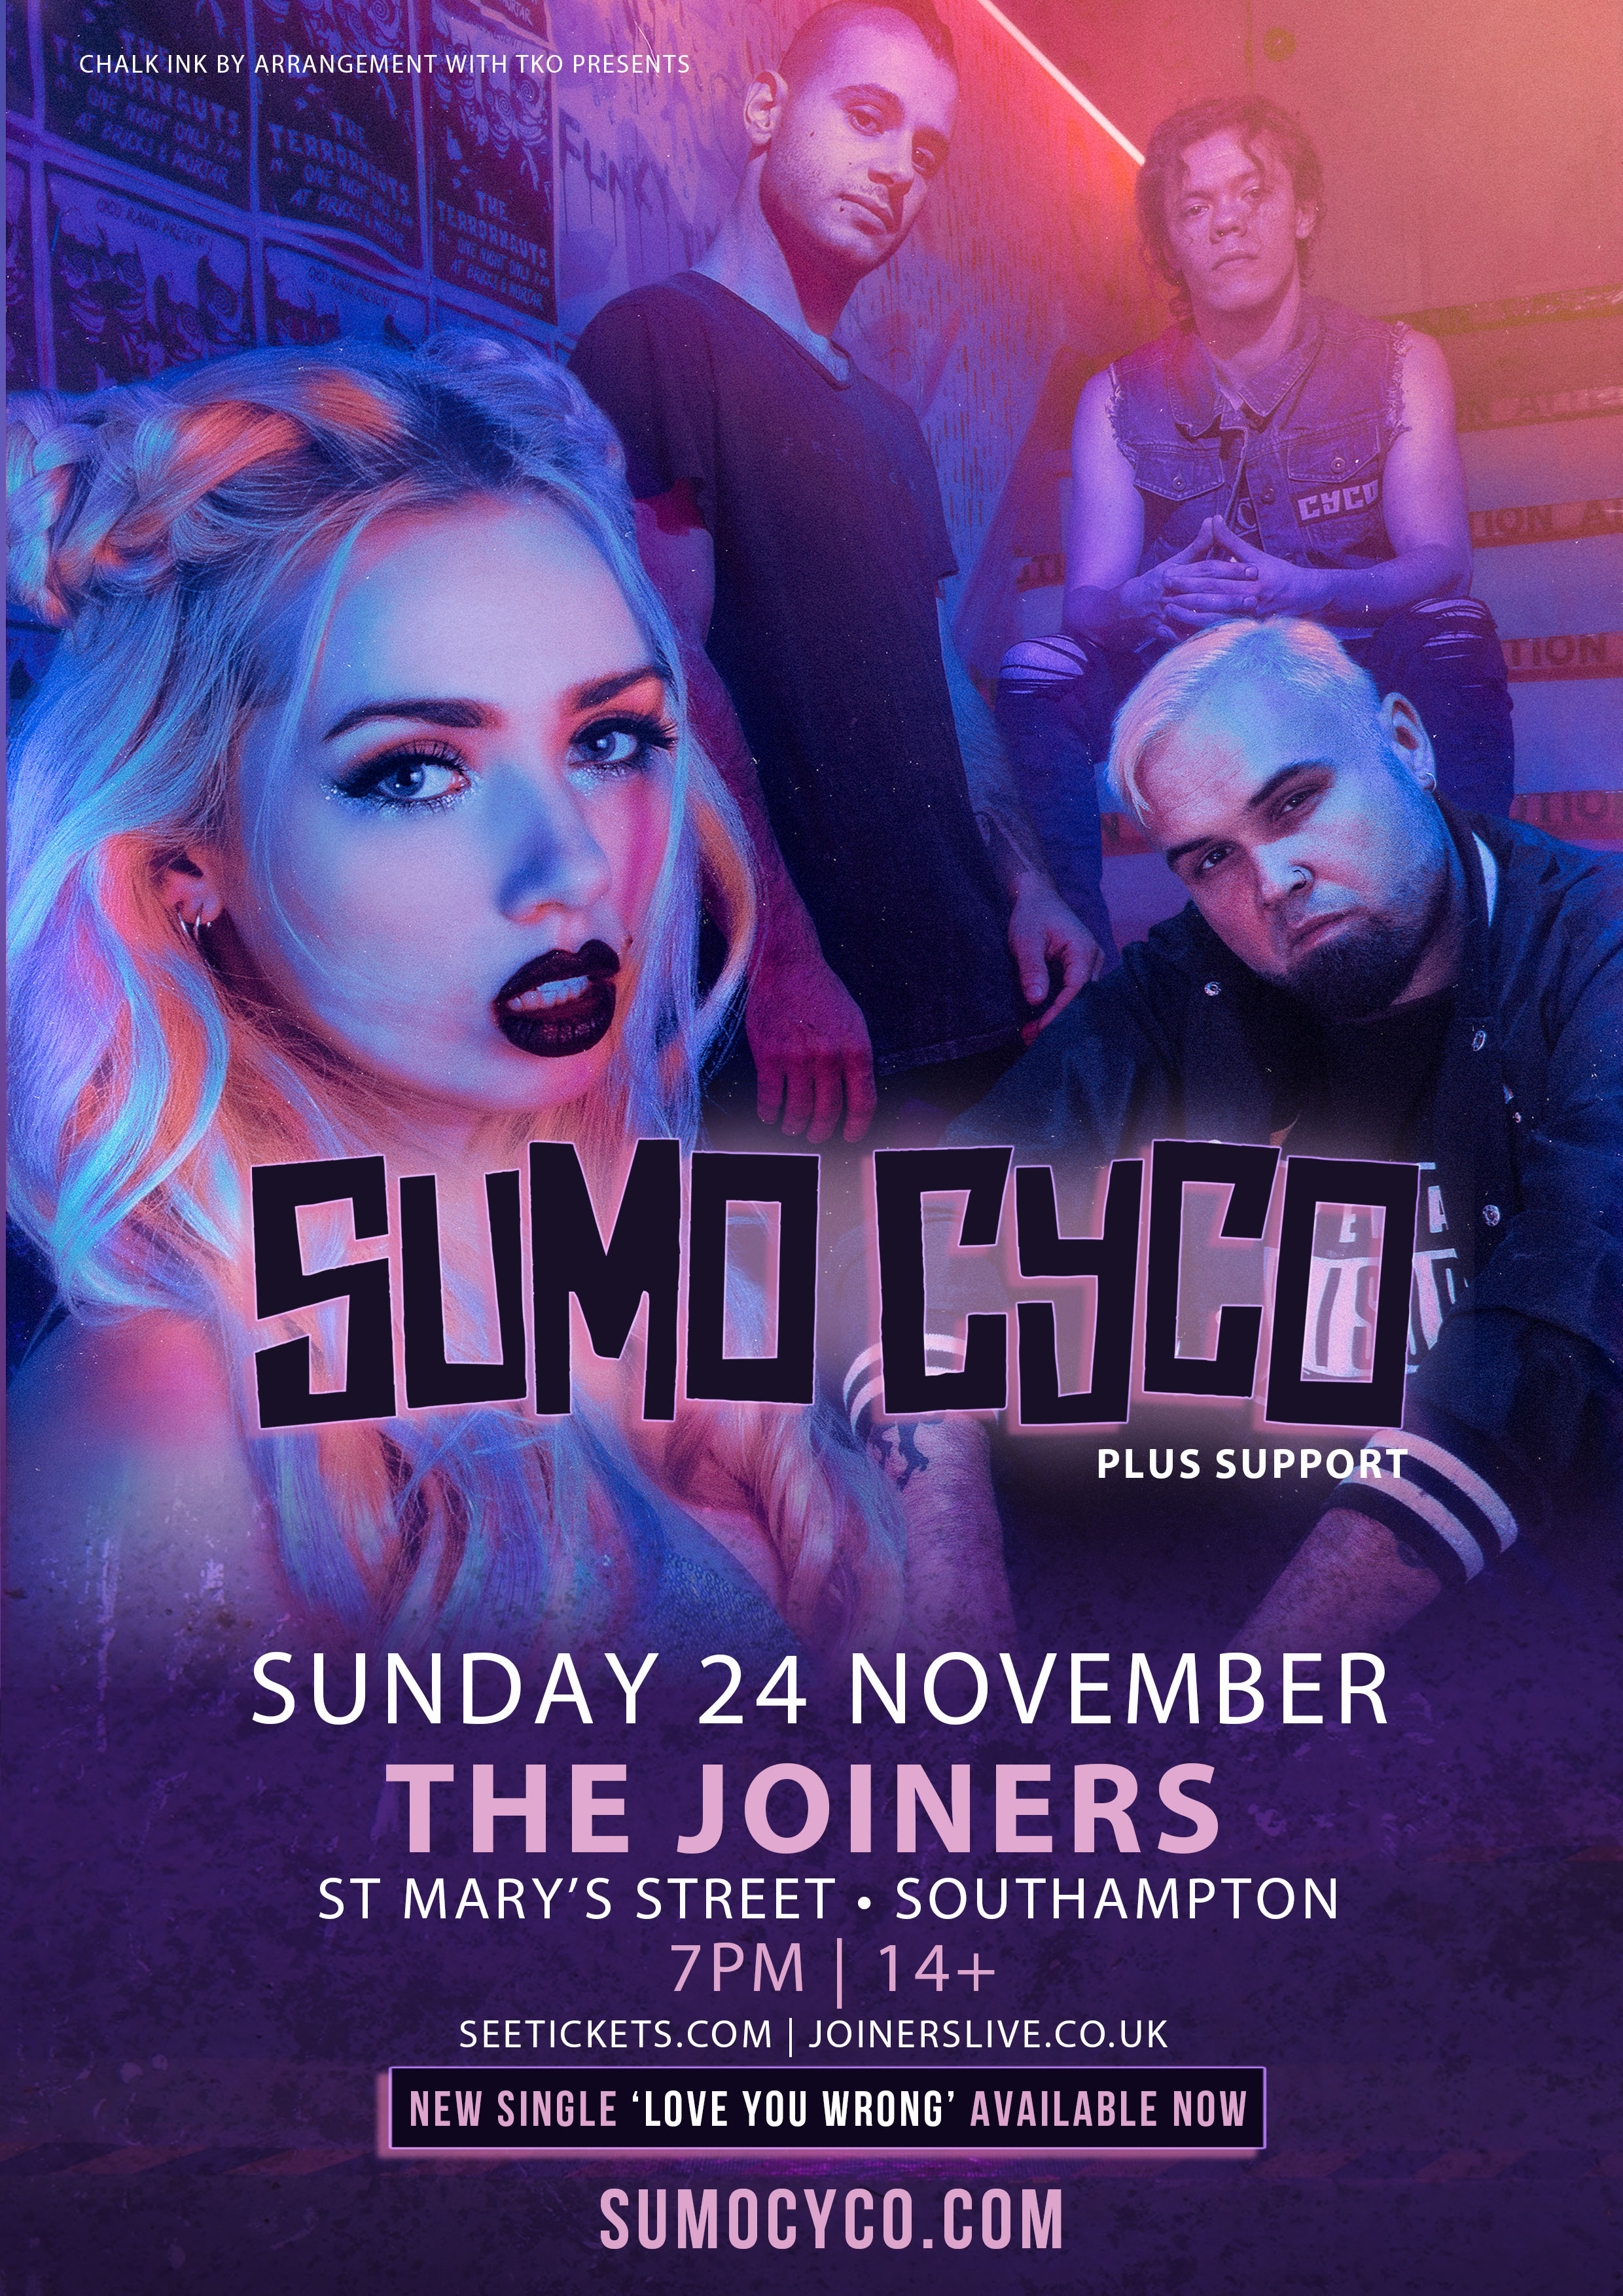 SUMO CYCO *SOLD OUT*